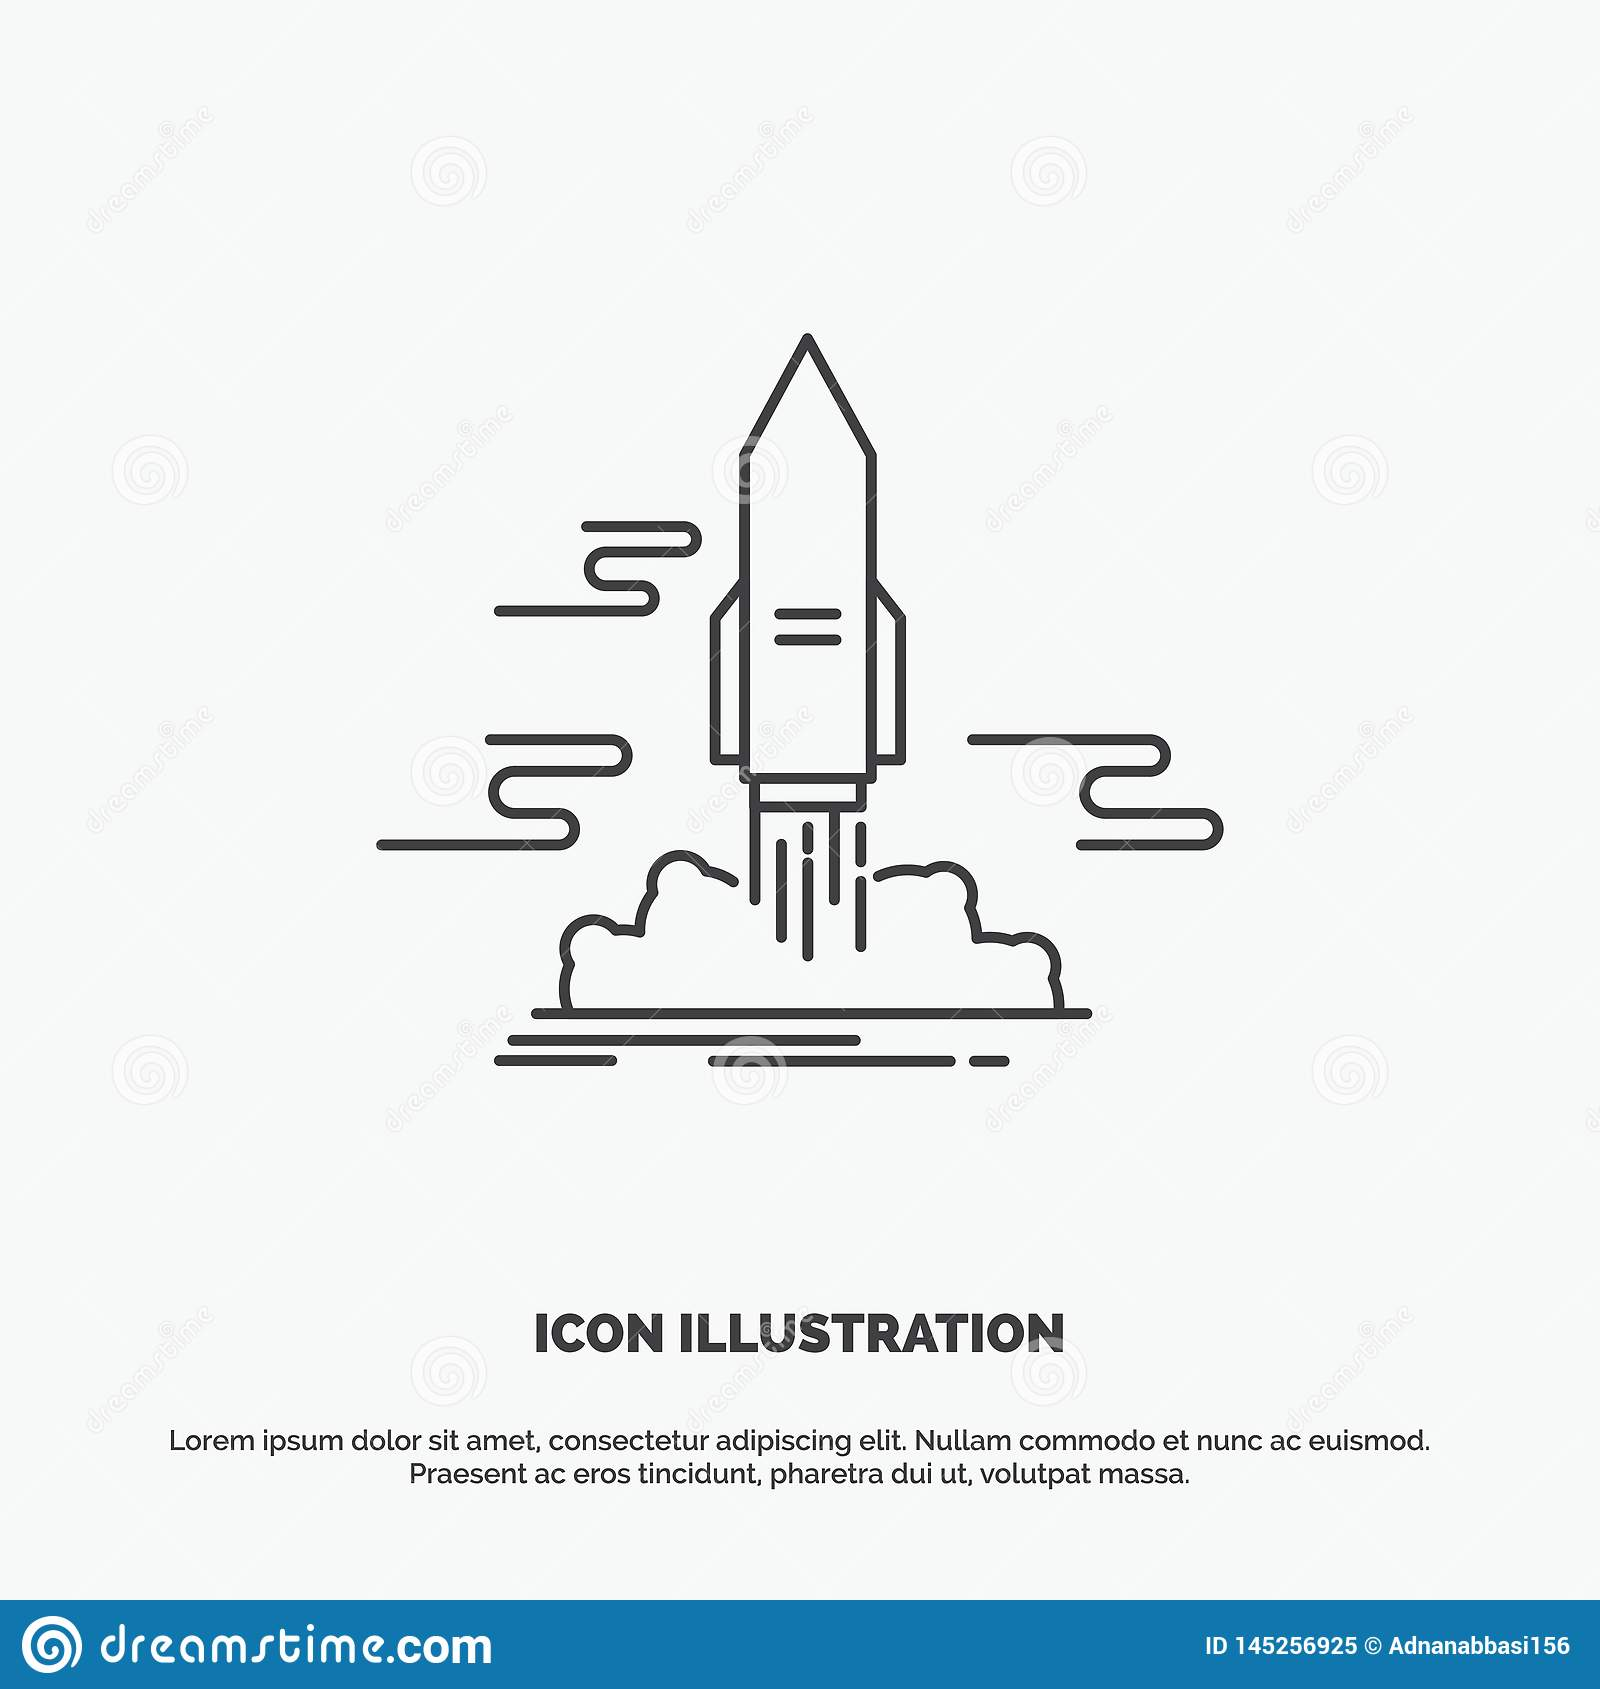 launch, Publish, App, shuttle, space Icon. Line vector gray symbol for UI and UX, website or mobile application